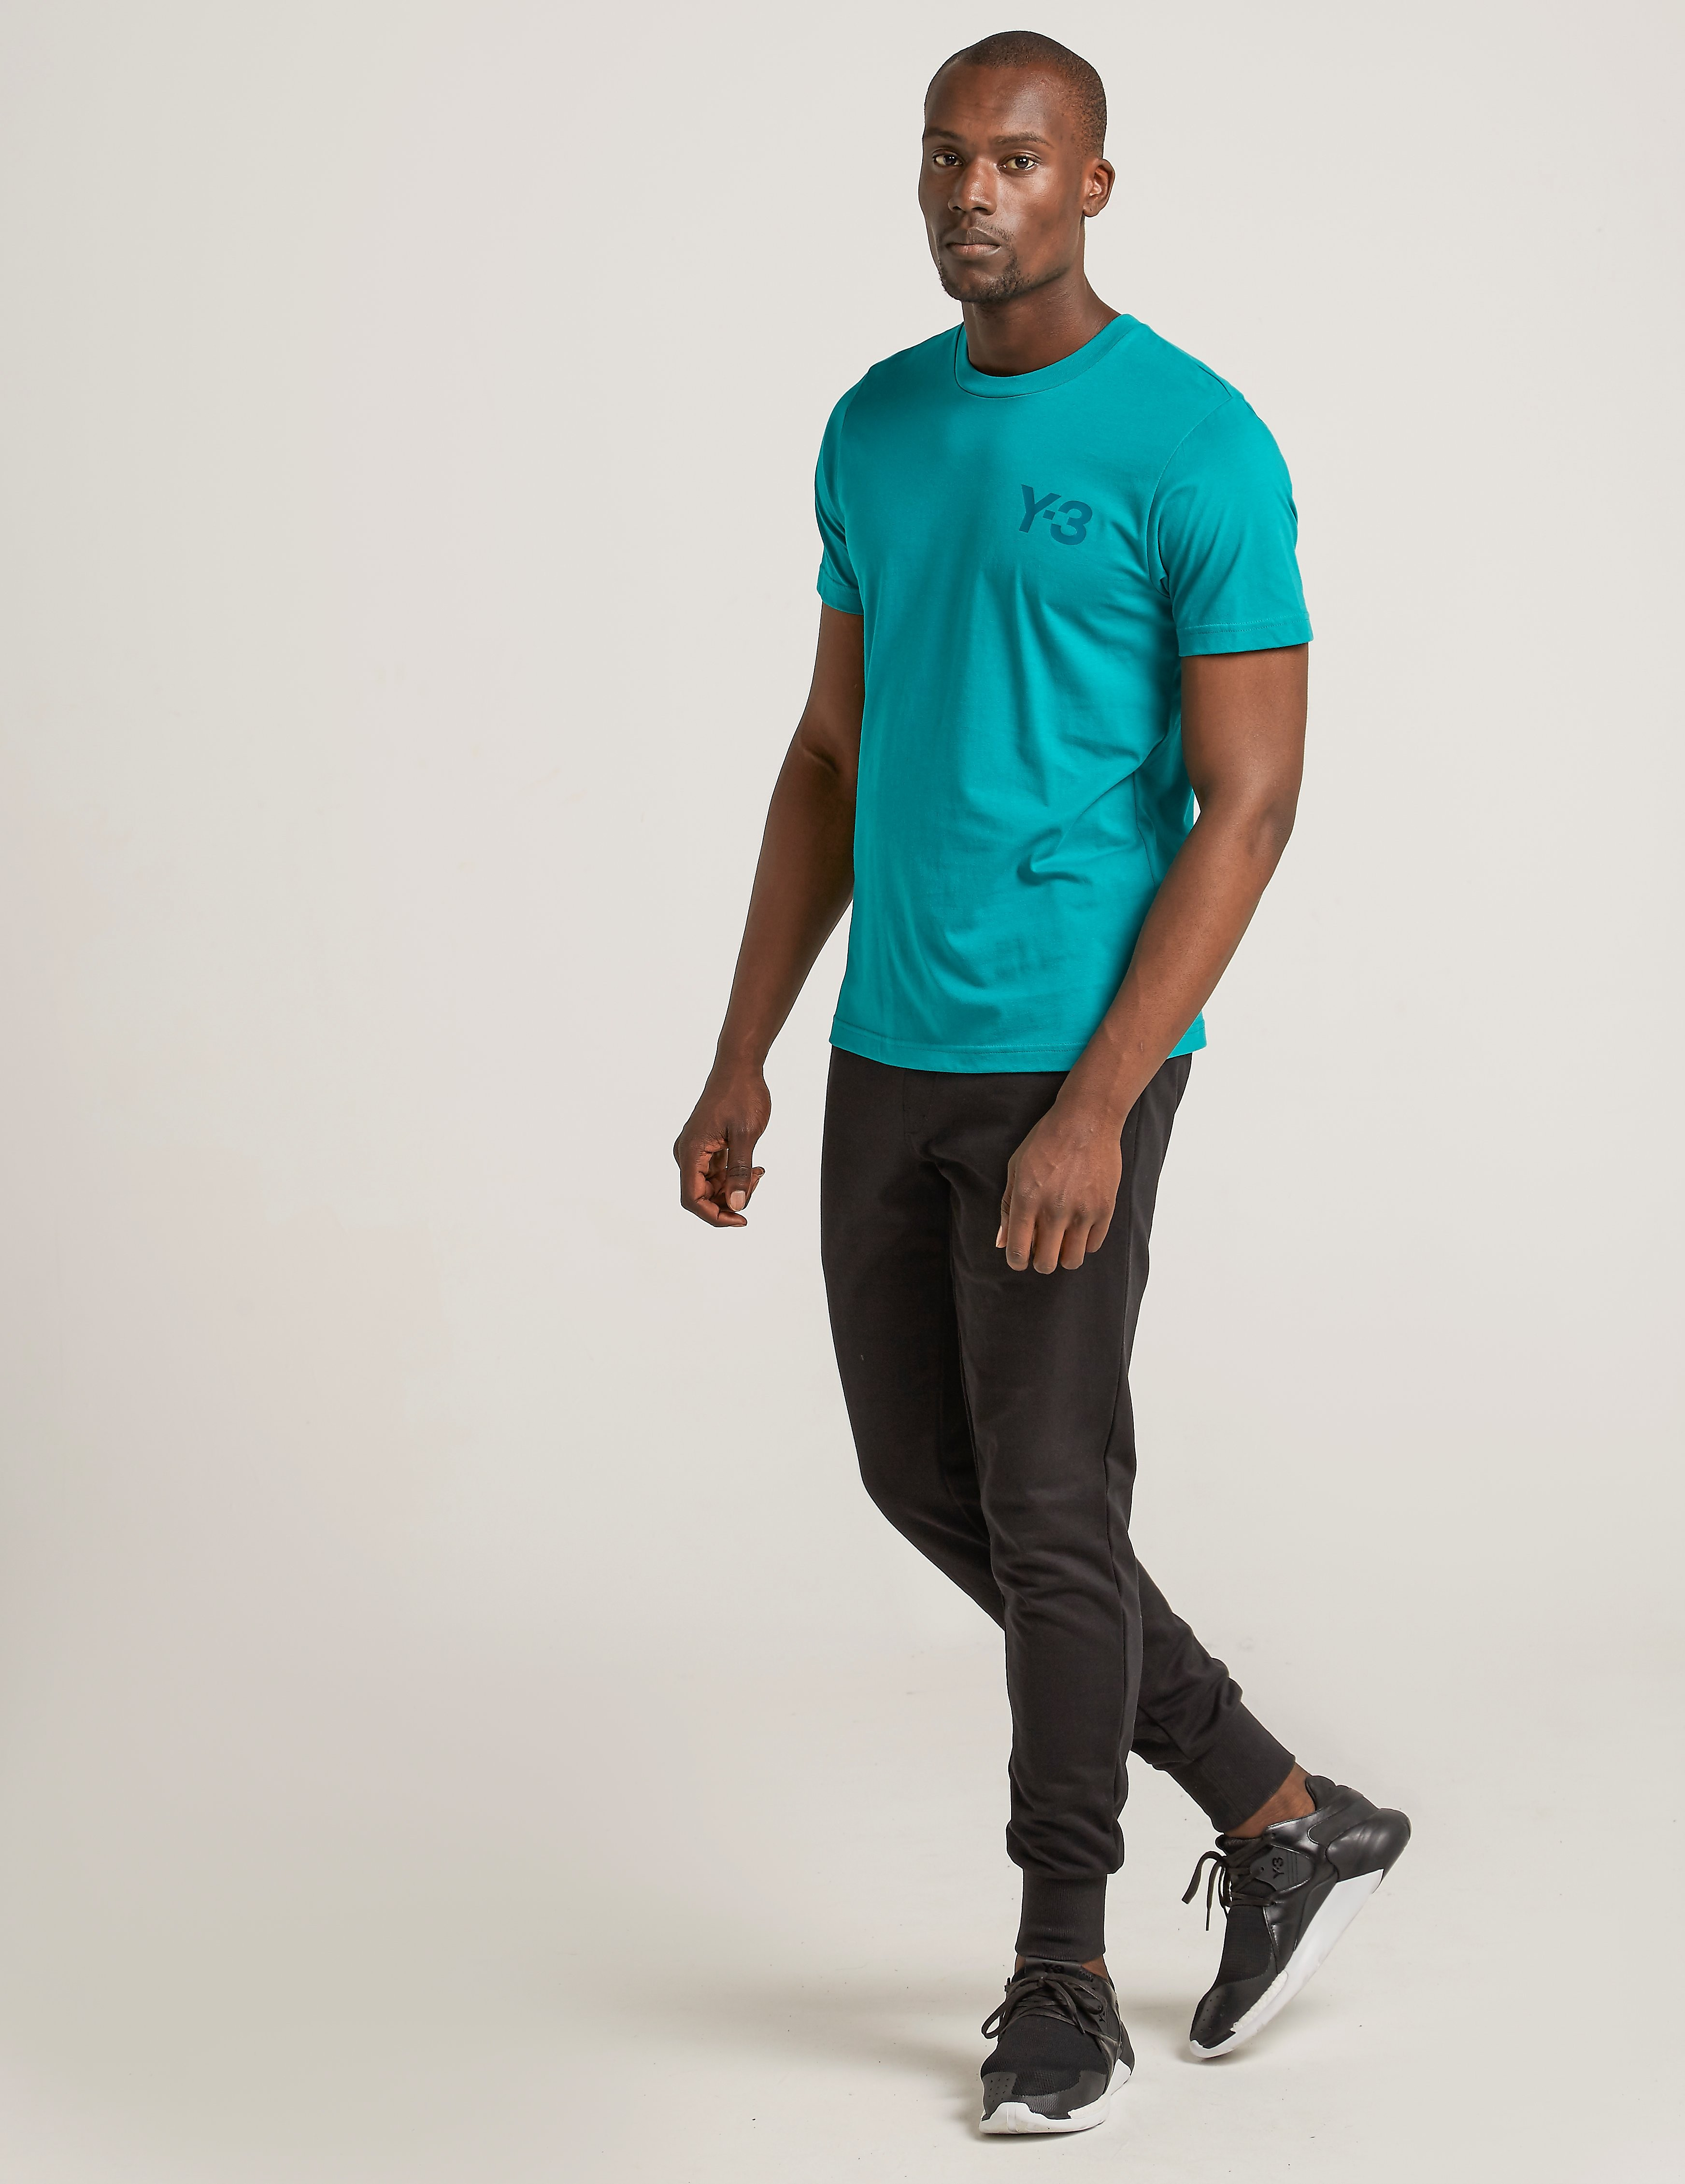 Y-3 CLS Chest T-Shirt